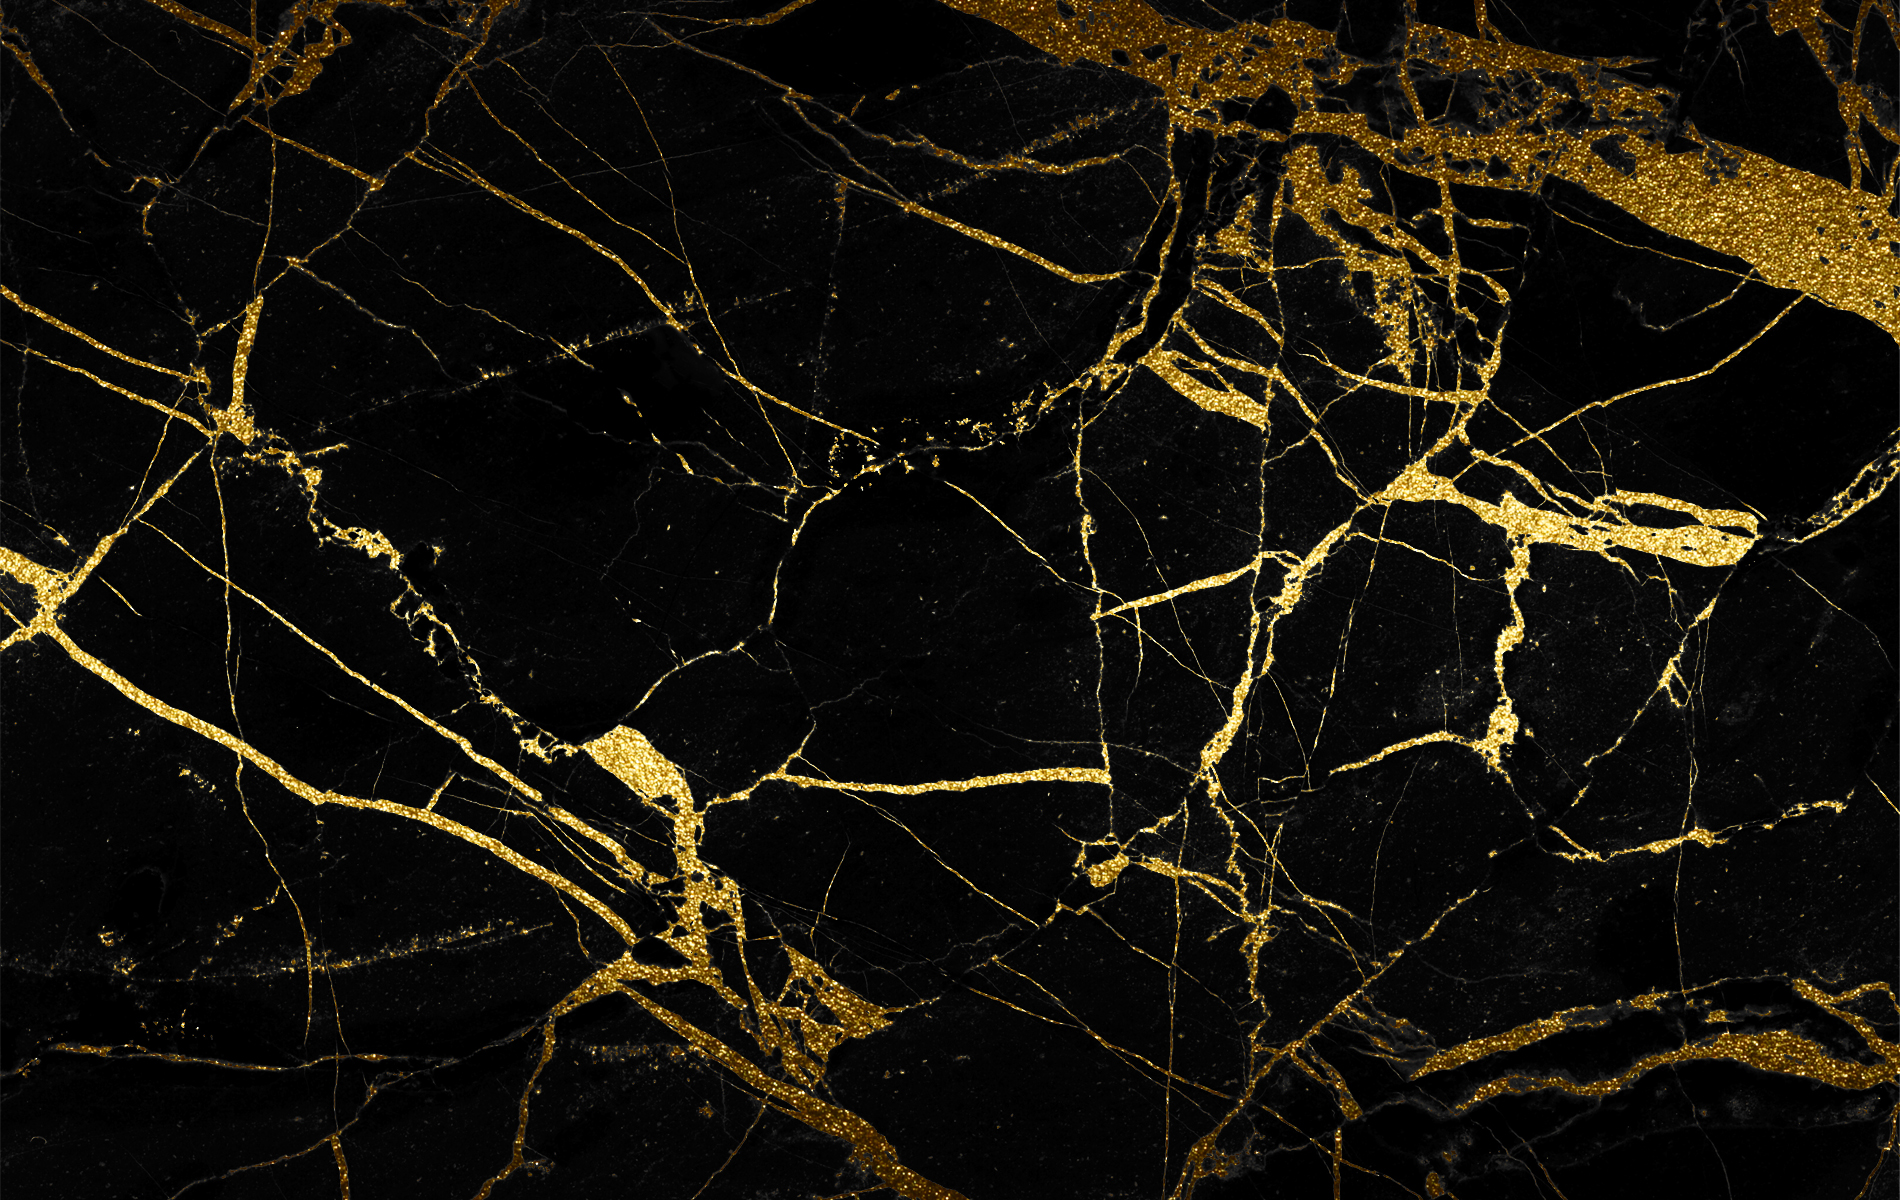 Black And Gold Wallpapers Images Download